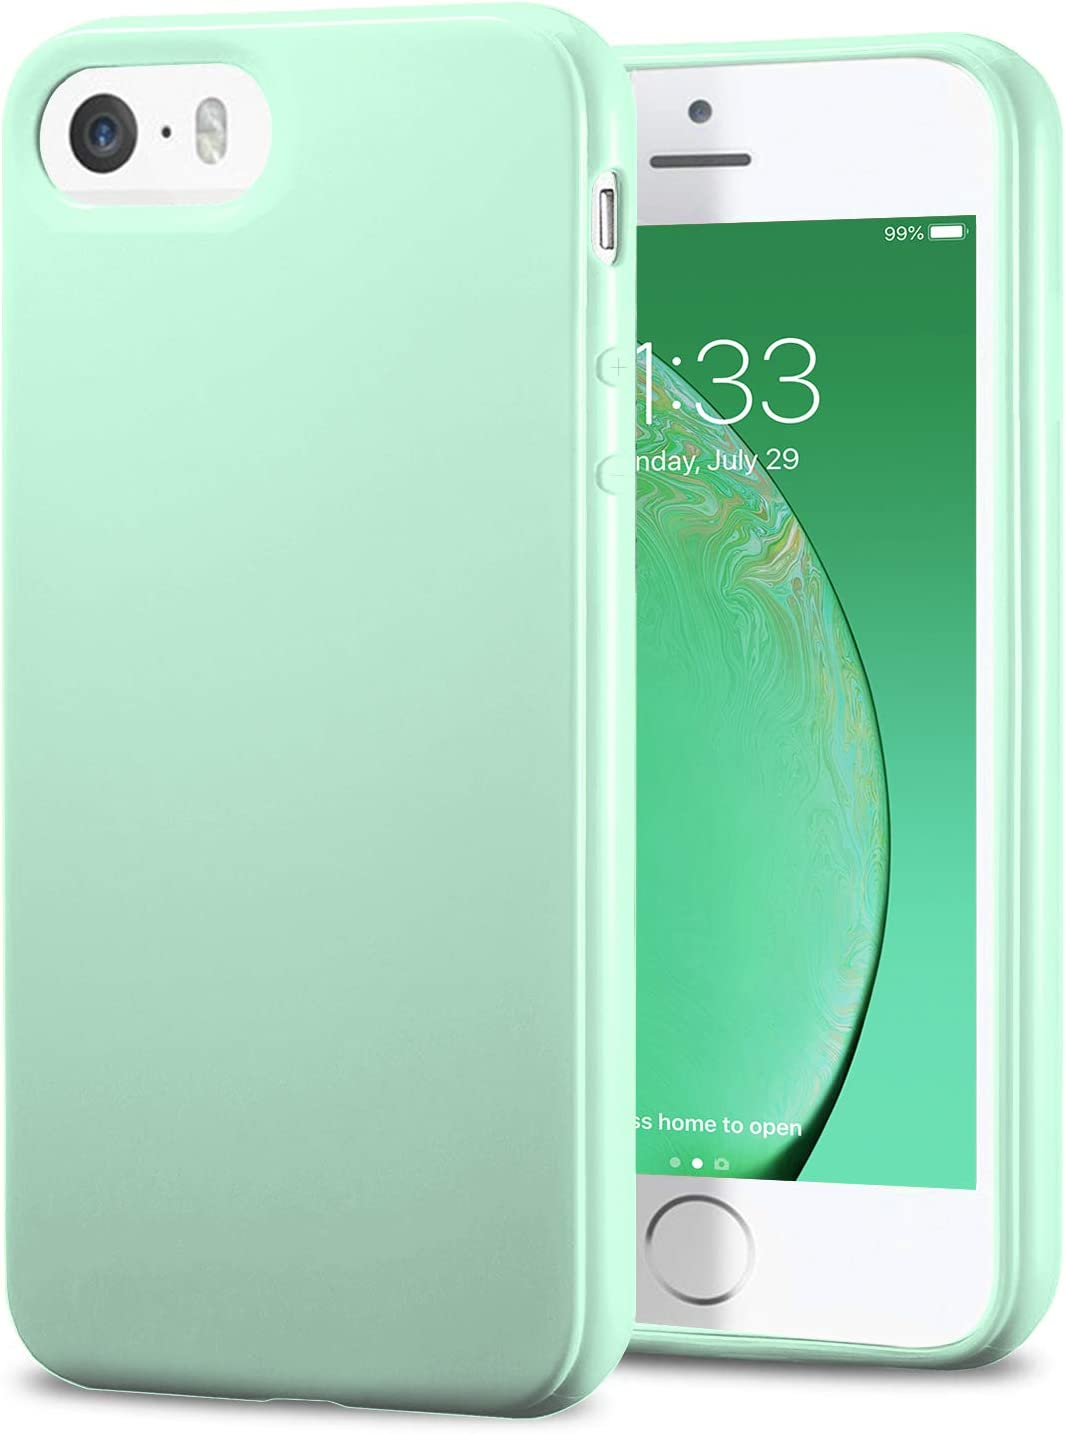 TENOC Phone Case Compatible for Apple iPhone SE 2016/ iPhone 5S/ iPhone 5, Slim Fit Cases Soft TPU Bumper Protective Cover, Glossy Mint